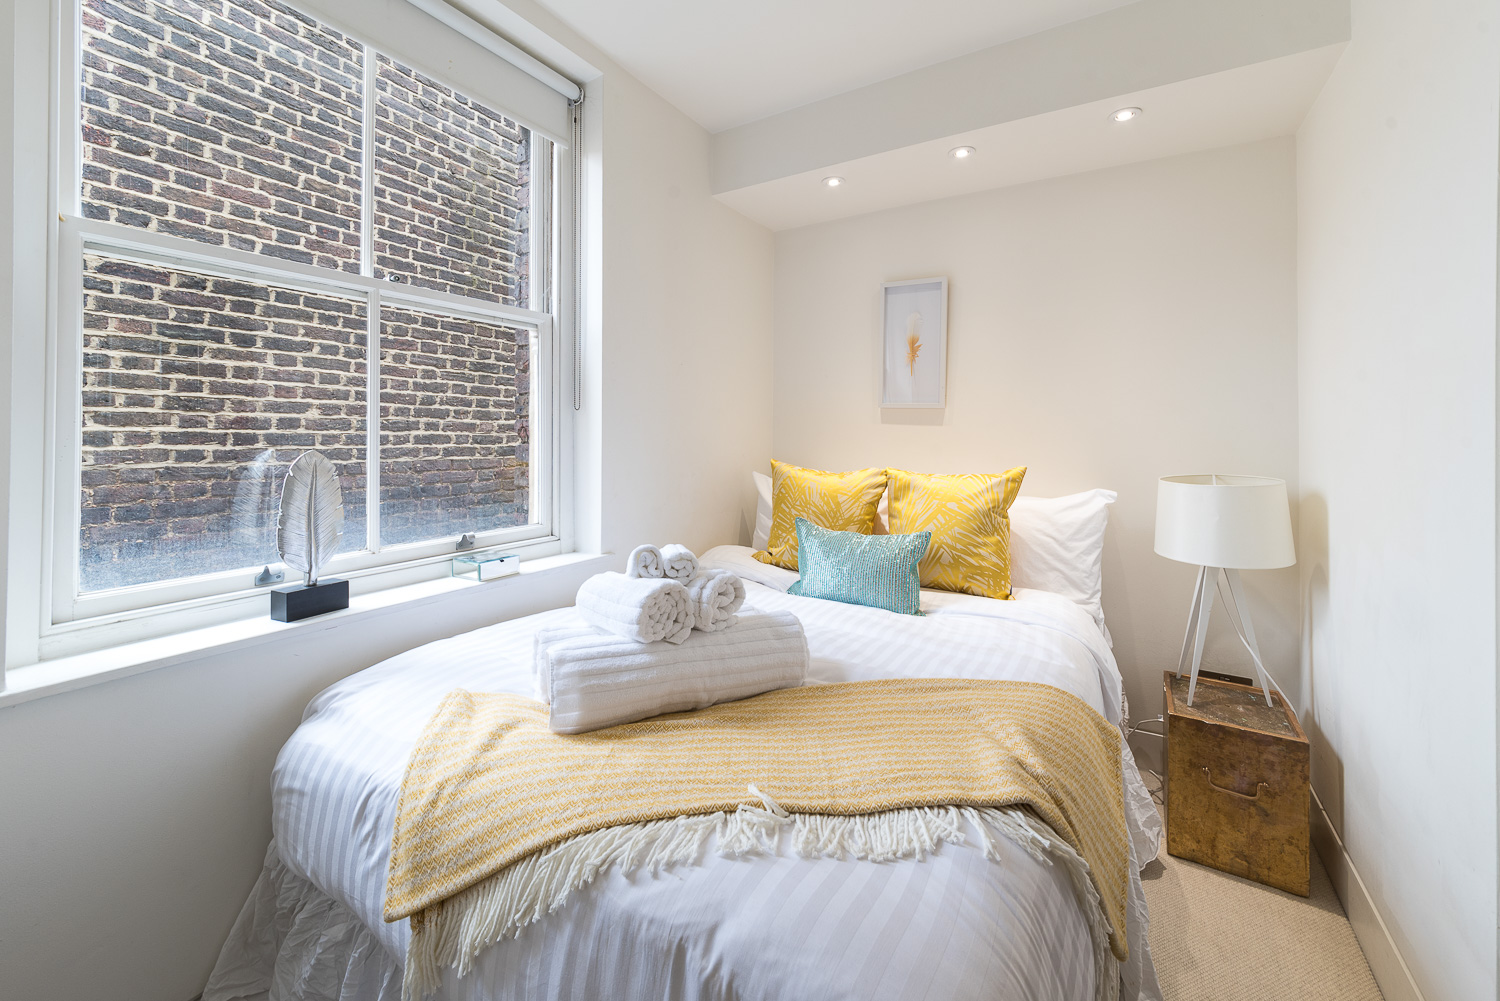 Lovelydays luxury service apartment rental - London - Fitzrovia - Foley Street II - Lovelysuite - 2 bedrooms - 2 bathrooms - Double bed - e97d5001ffcf - Lovelydays